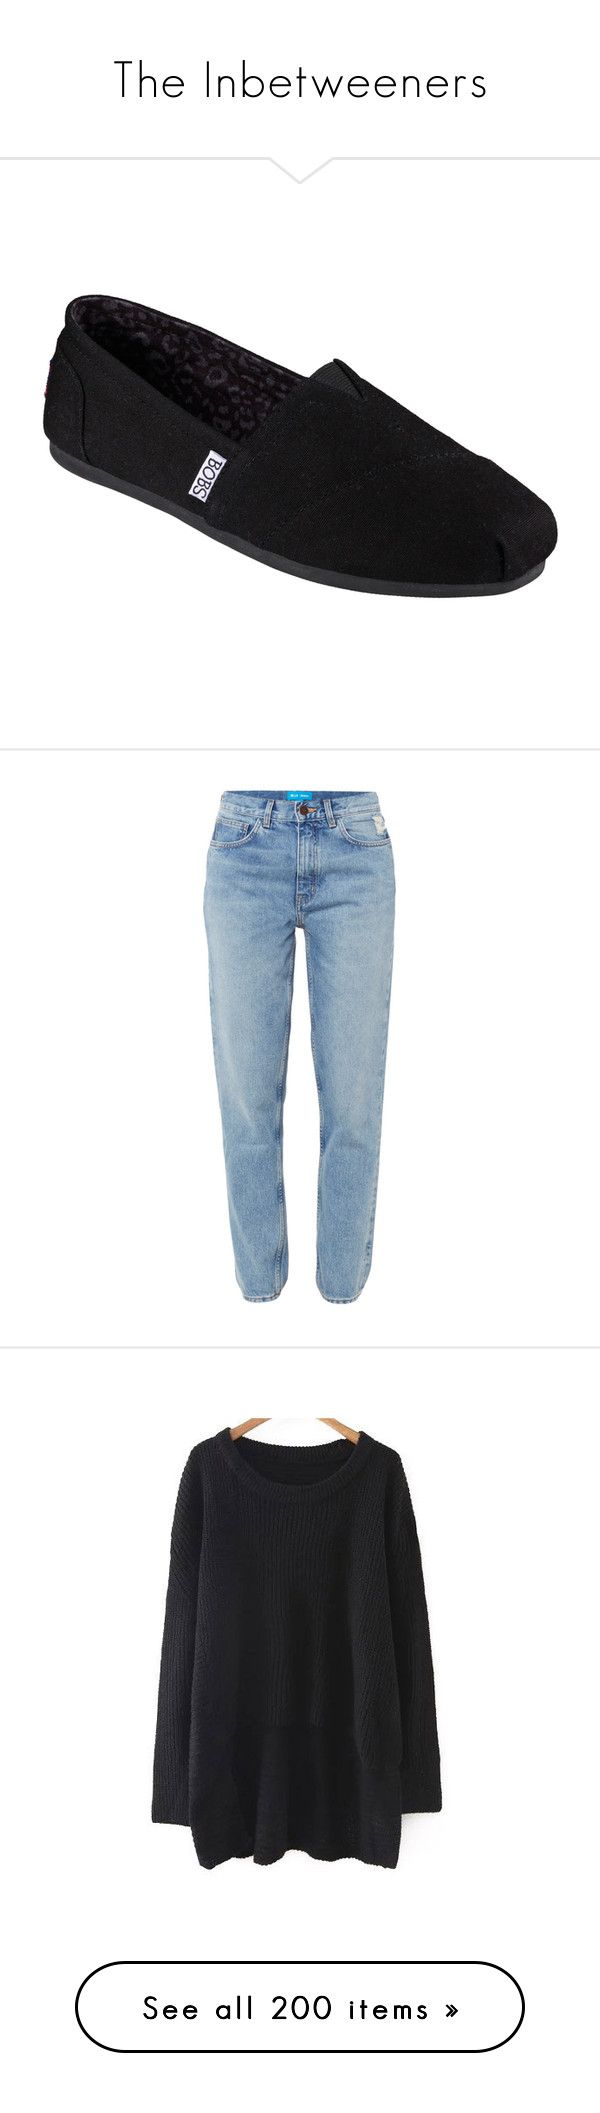 women's fashion, shoes, flats, black, slip-on shoes, canvas slip on shoes, black flat shoes, black shoes, black flats, clothing, jeans, pants, bottoms, clothing - trousers, denim, high waisted boyfriend jeans, destructed boyfriend jeans, boyfriend jeans, high waisted distressed boyfriend jeans, blue ripped jeans, tops, sweaters, oversized tops, oversized sweaters, over sized sweaters, navy blue top, print top, print shirts, shirt top, navy top, dresses, short dresses, cream, mini dress…